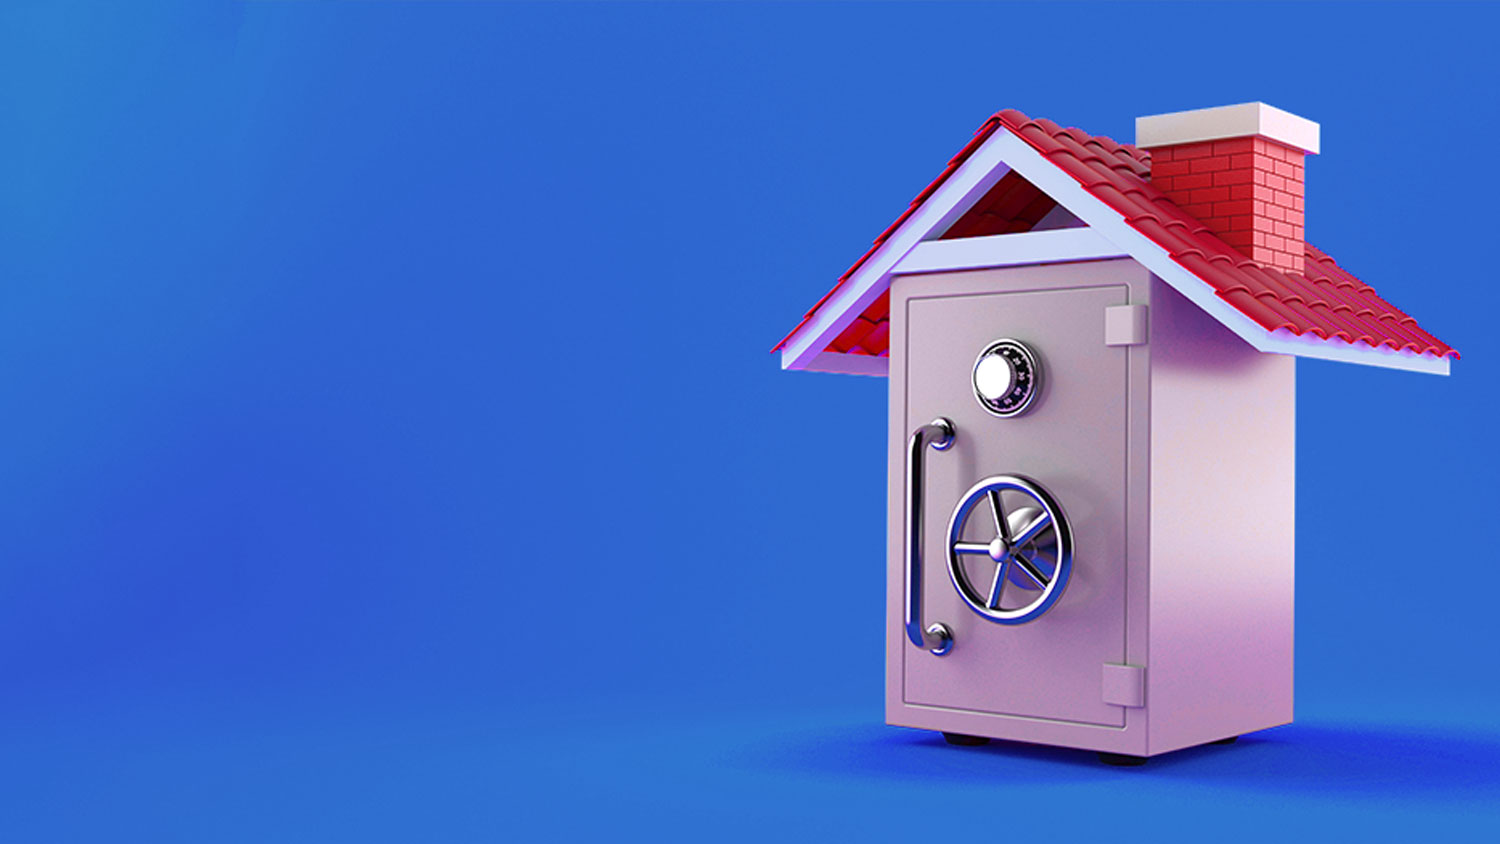 HOW TO MAKE A SAFE REAL ESTATE INVESTMENT